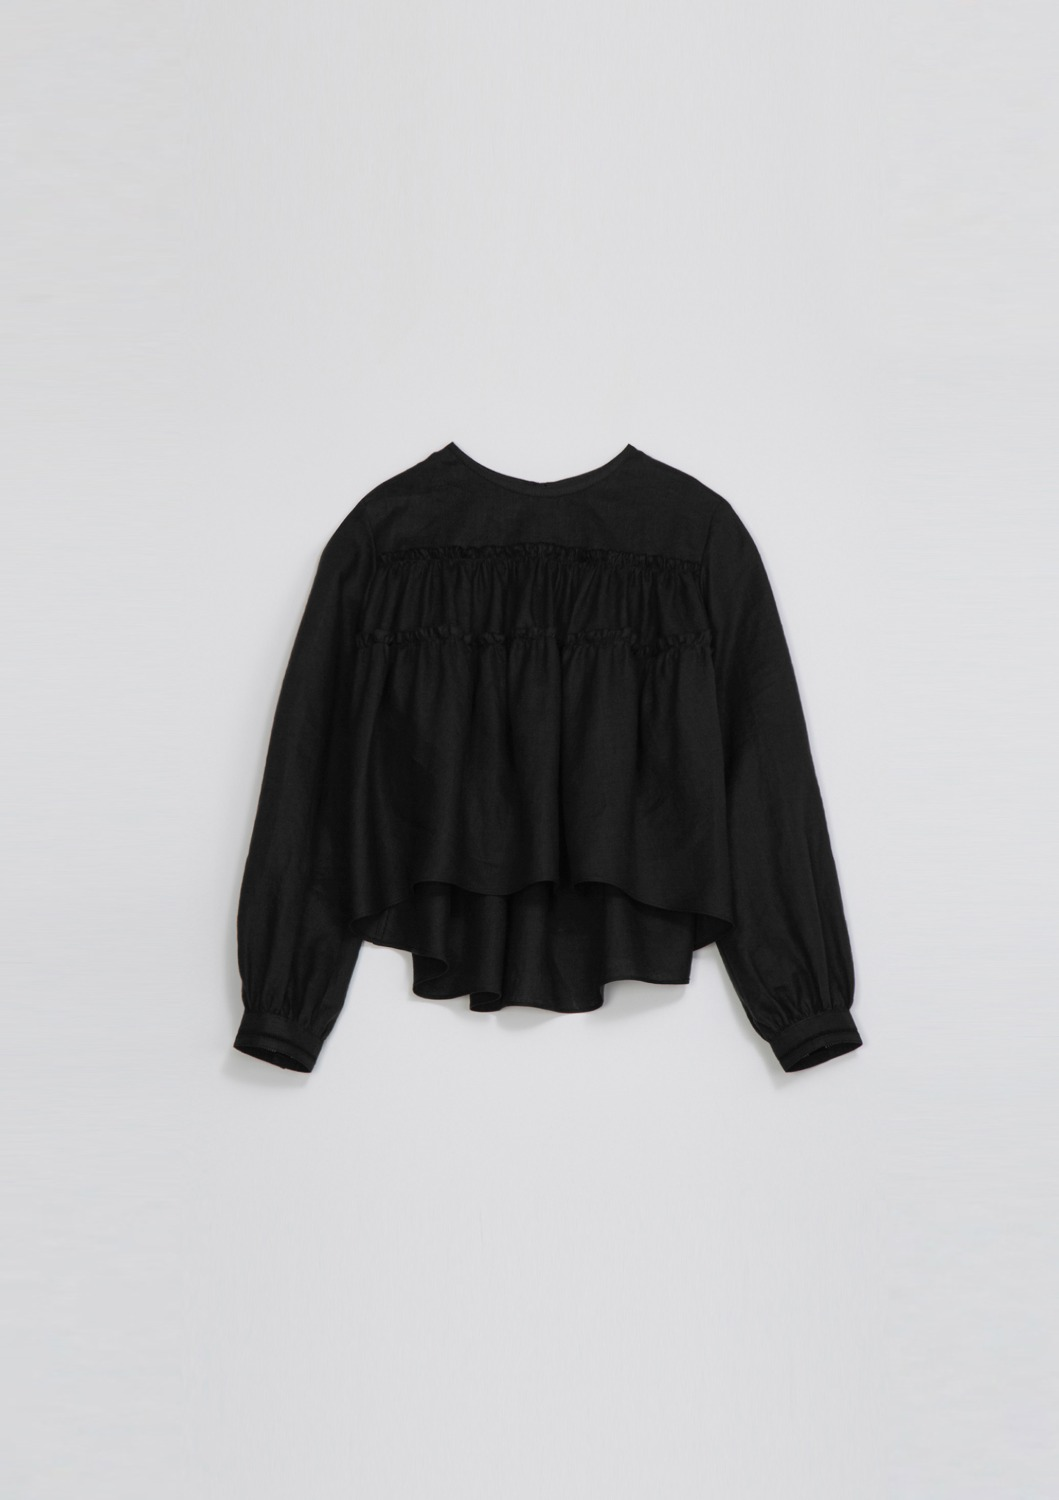 Agreable Tierd Blouse - Black Linen